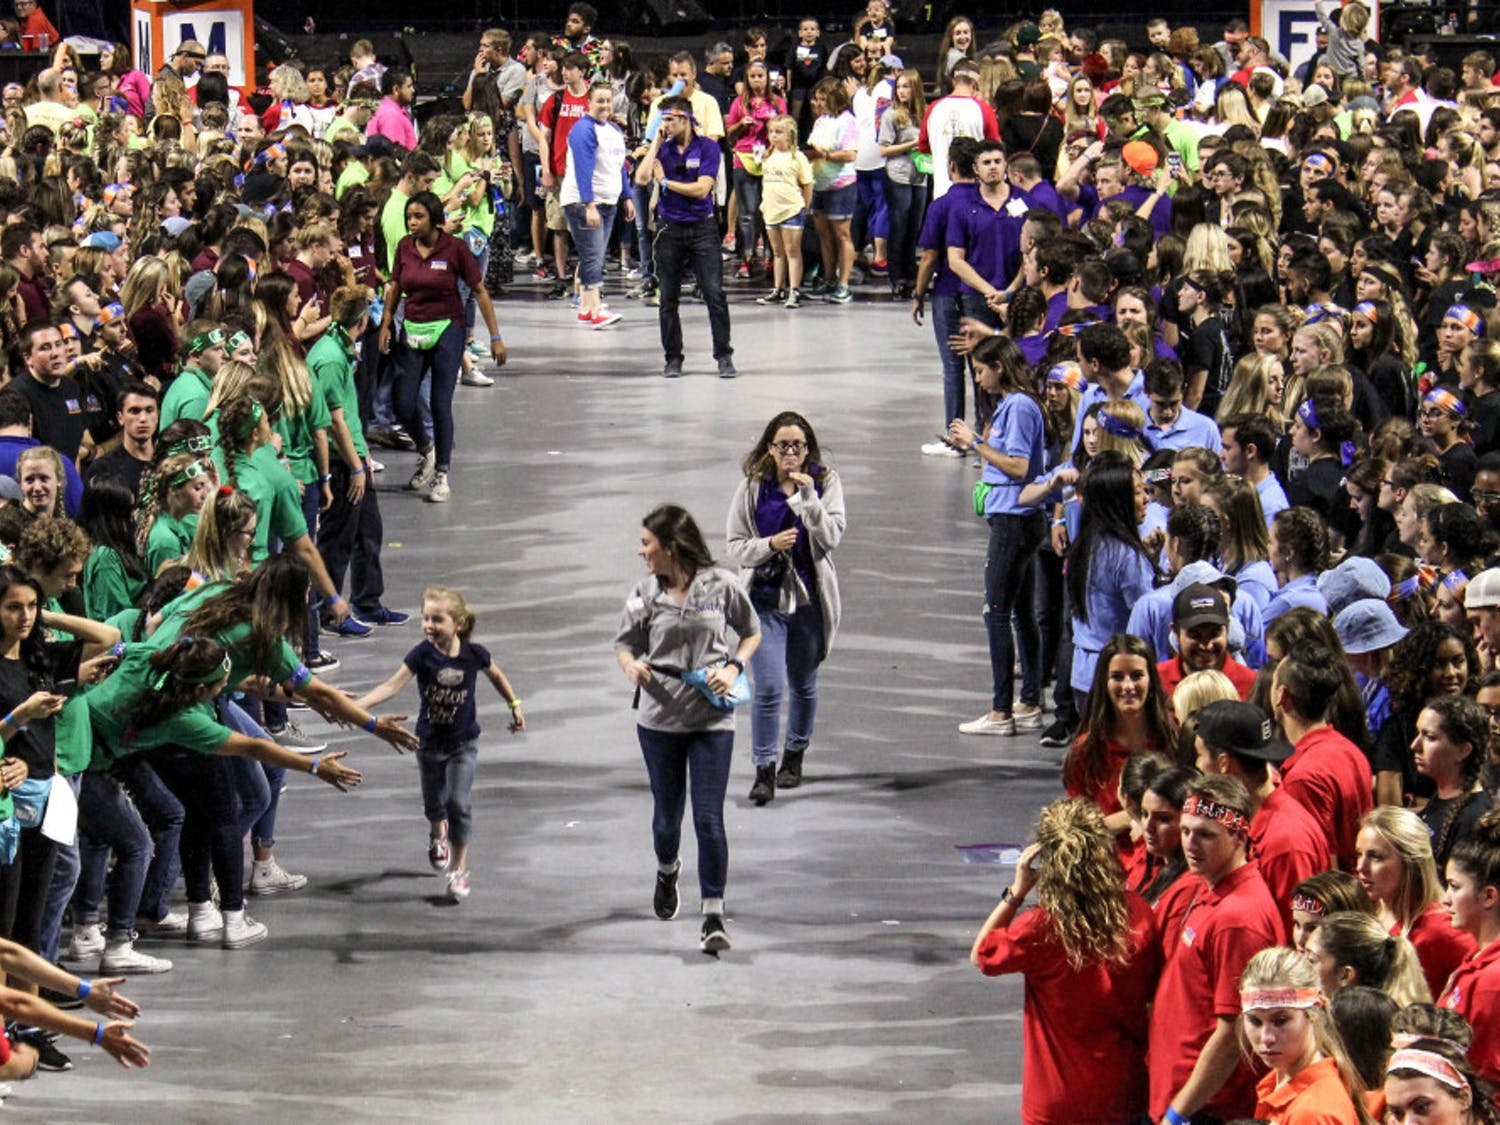 A child runs through the crowd of dancers during Dance Marathon at the O'Connell Center on Sunday. Dance Marathon is an event where volunteers must stay awake and on their feet for 26.2 hours.